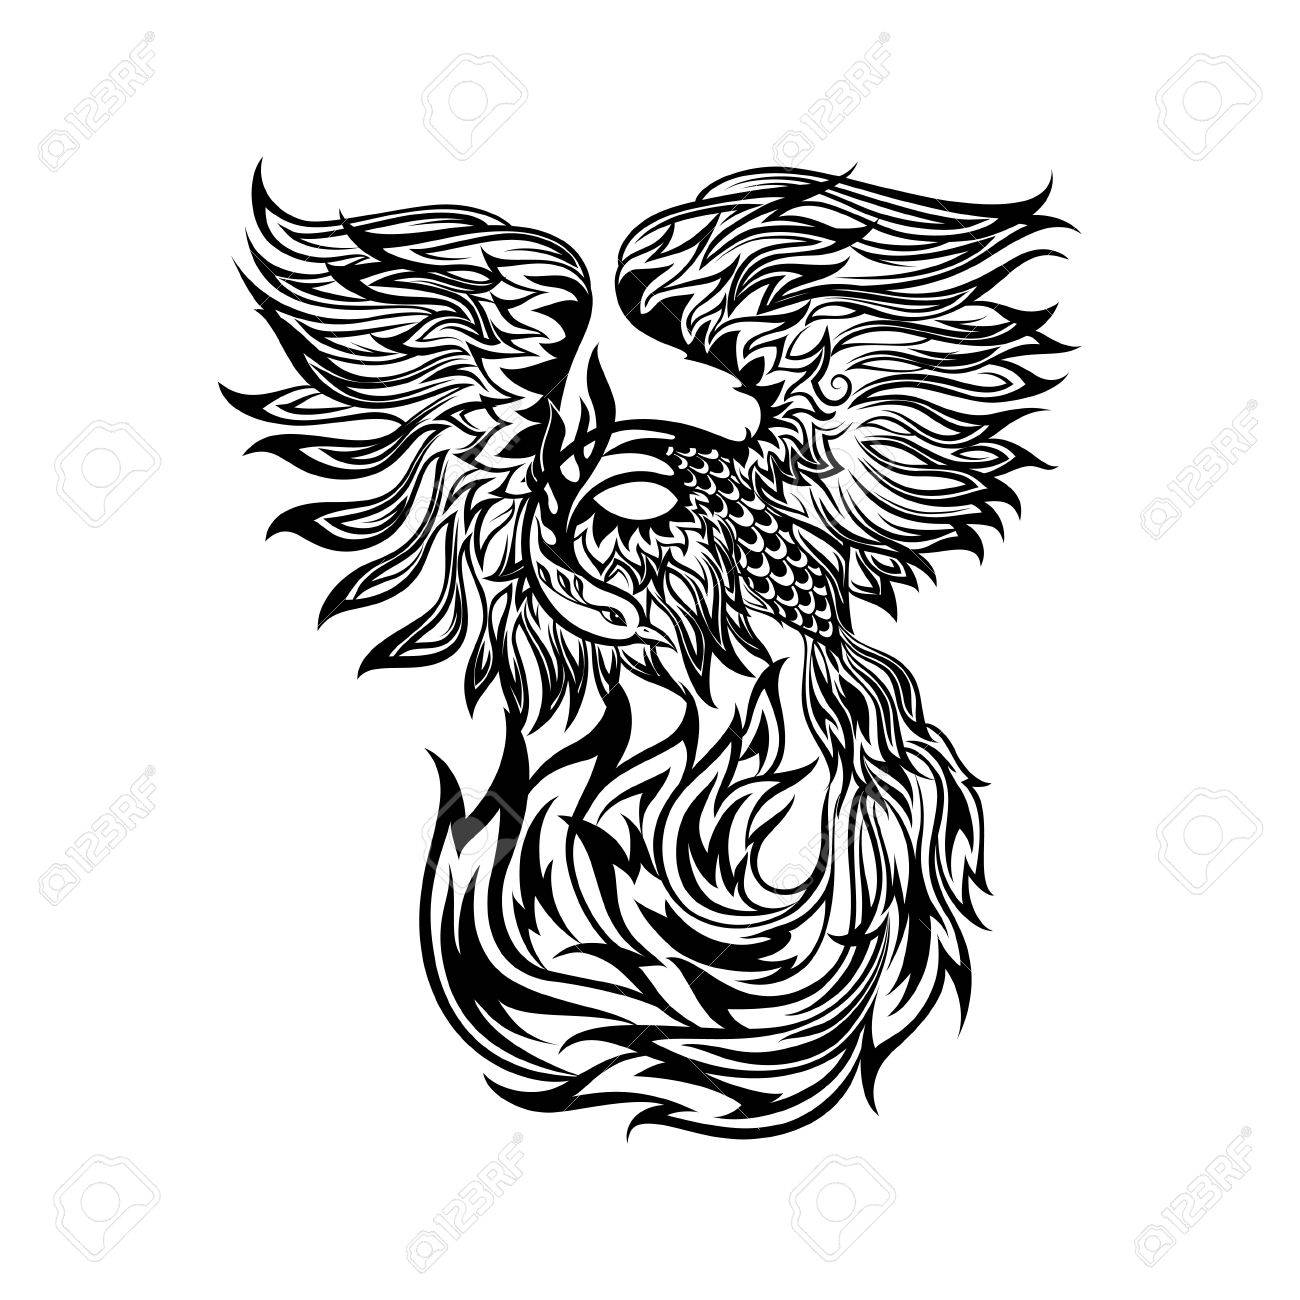 875dcd073 Tattoo with flaming phoenix in doodle tribal style. hand drawn stylized  illustration. Stock Vector